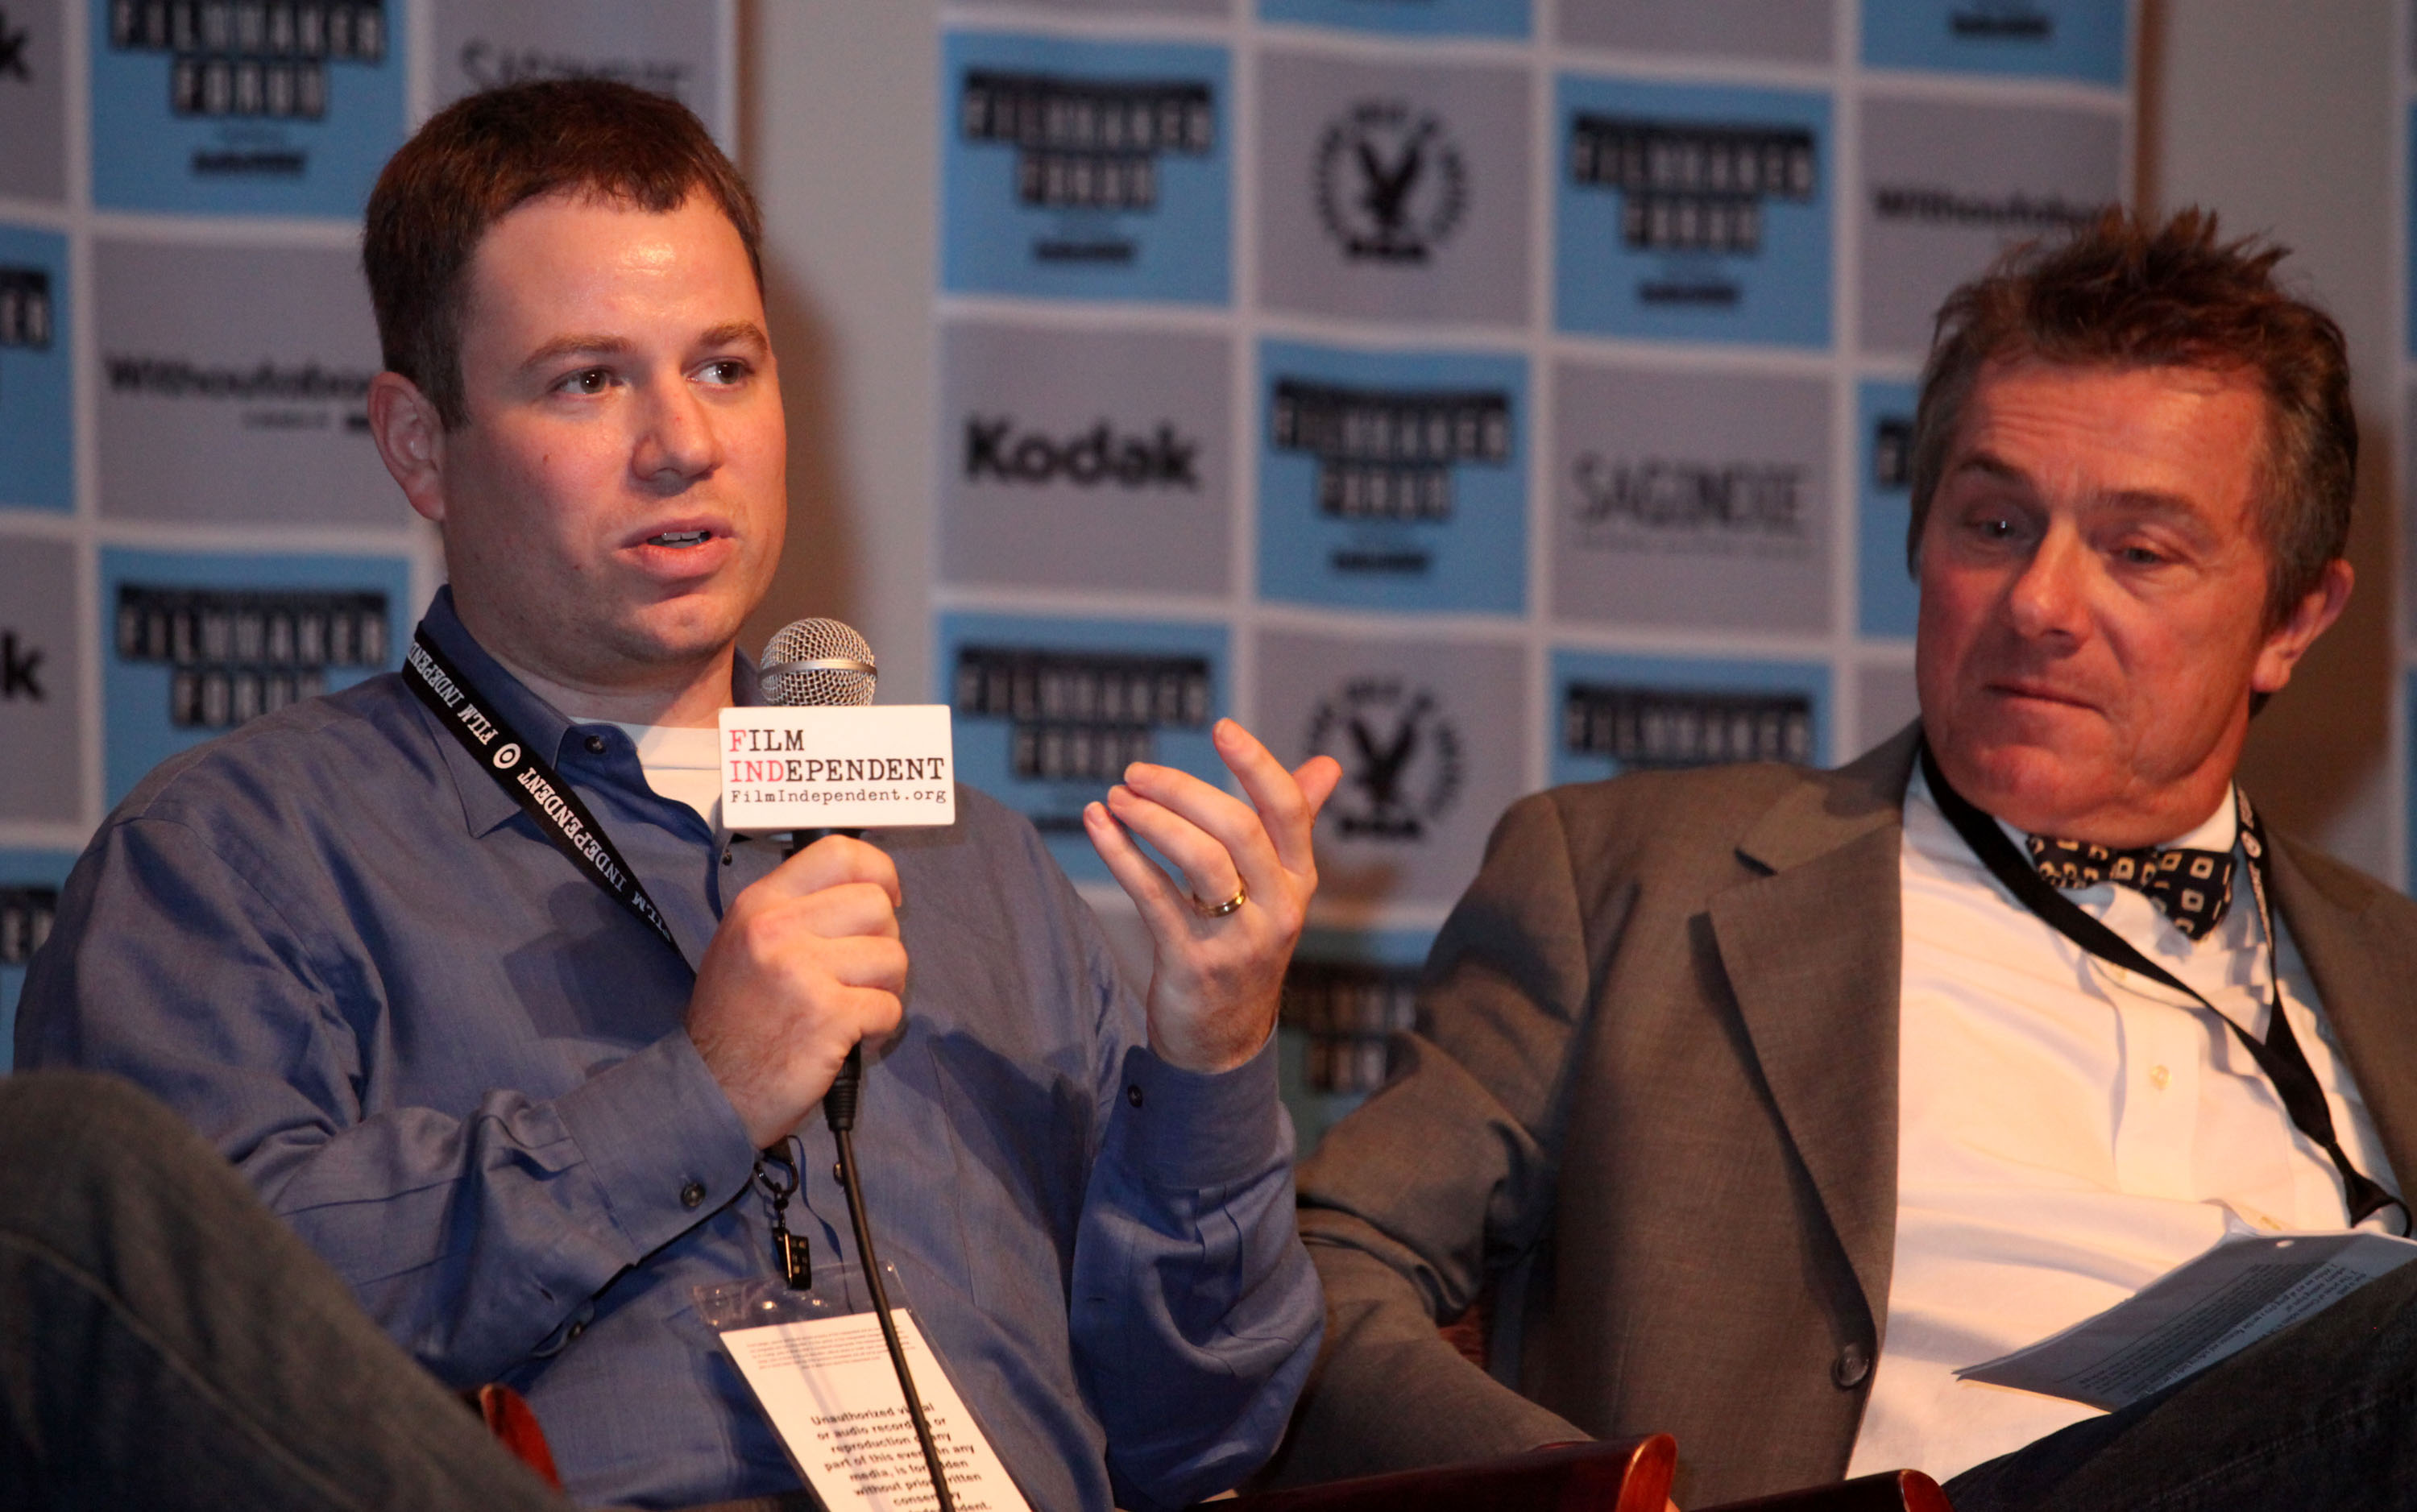 Film Independent's Filmmaker Forum - Day 3